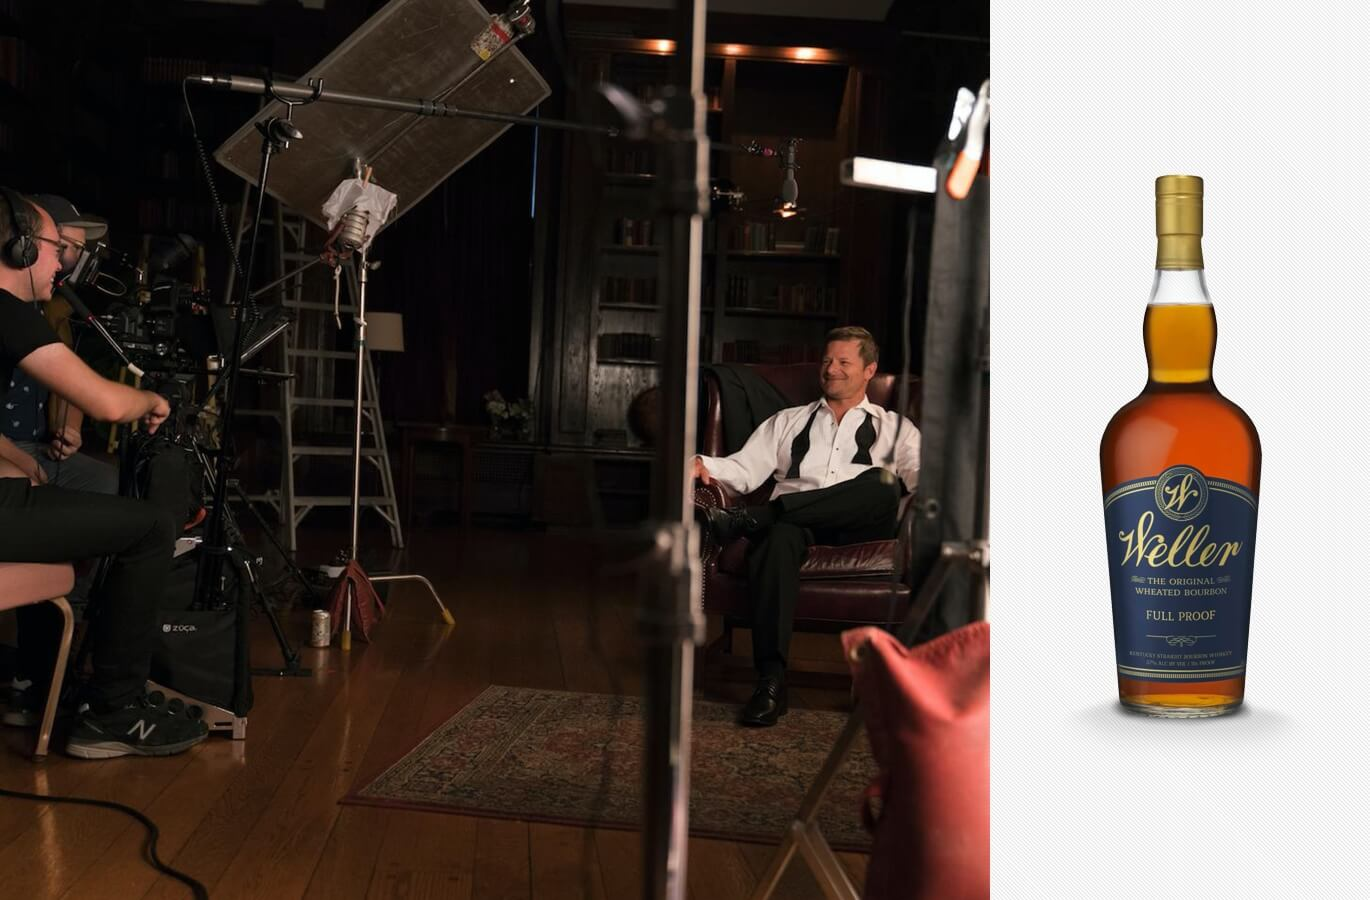 Neat: The Story of Bourbon movie and Weller Full Proof bourbon